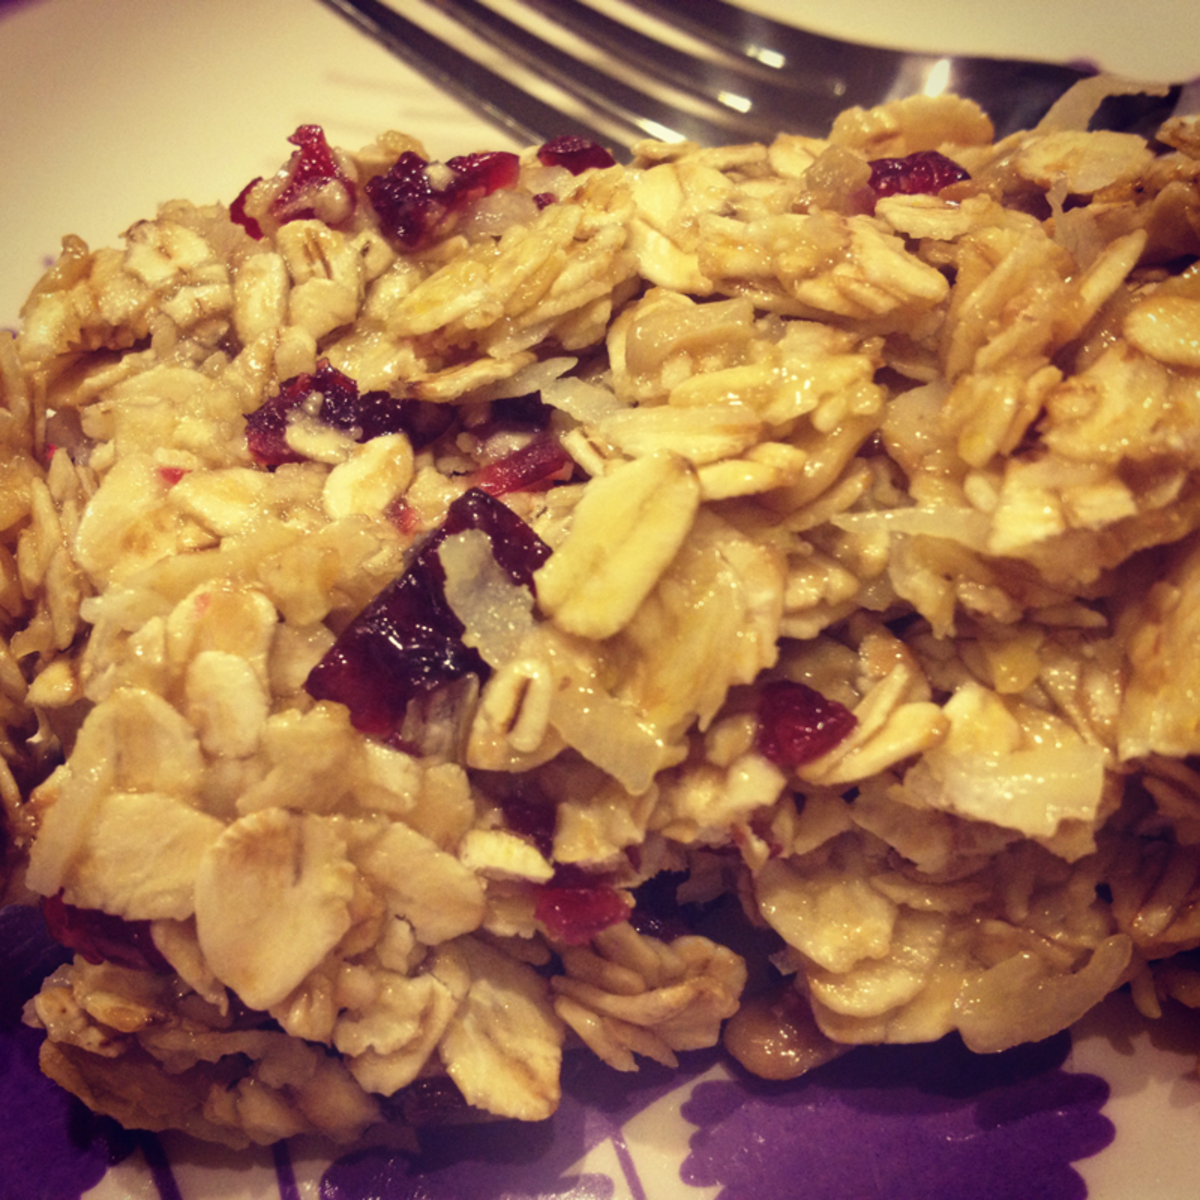 The results of this easy oatmeal bar recipe.